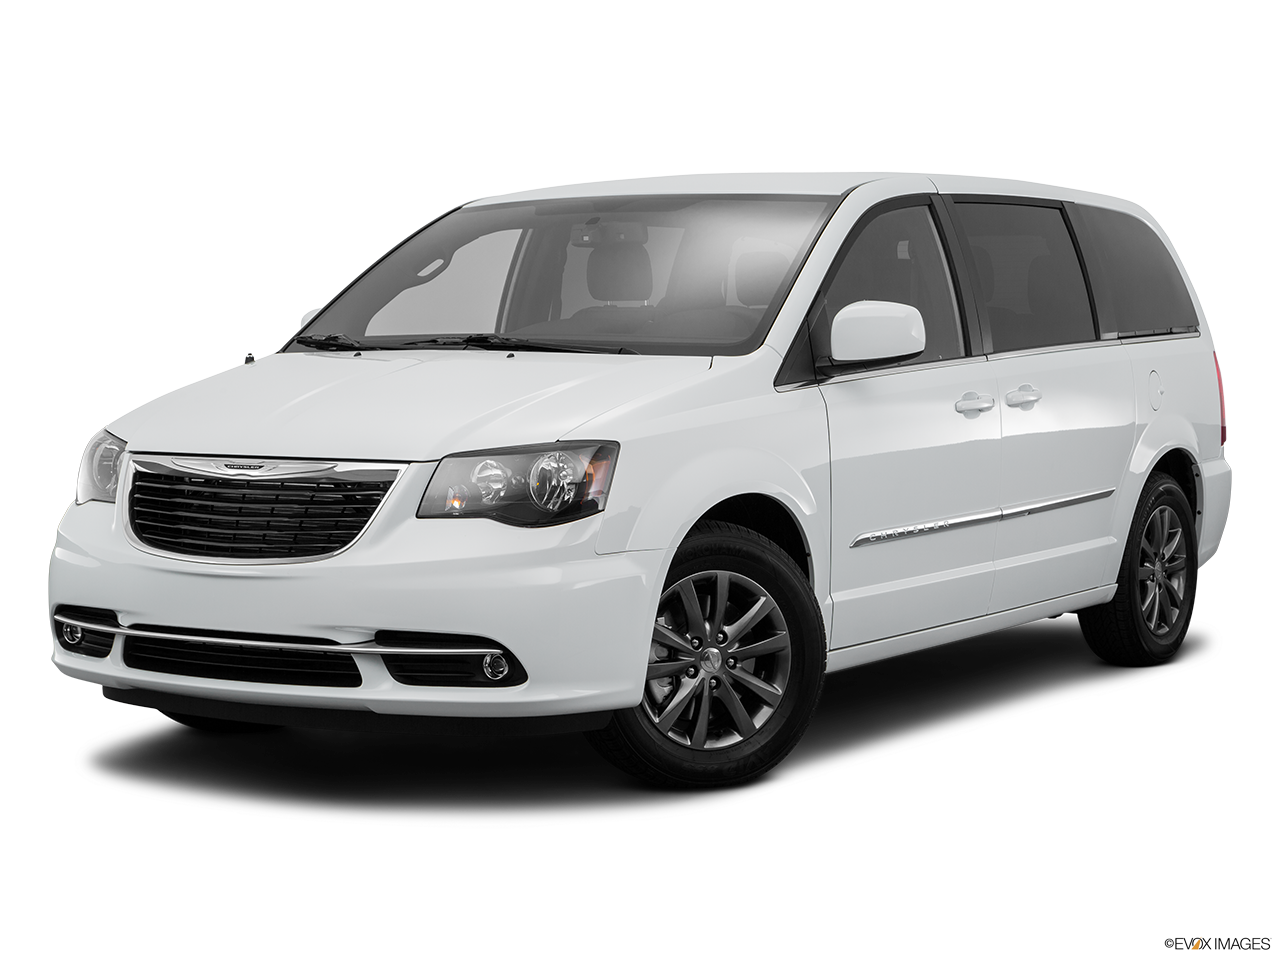 Test Drive A 2016 Chrysler Town and Country at Arrigo Dodge Chrysler Jeep Ram Ft. Pierce in Fort Pierce